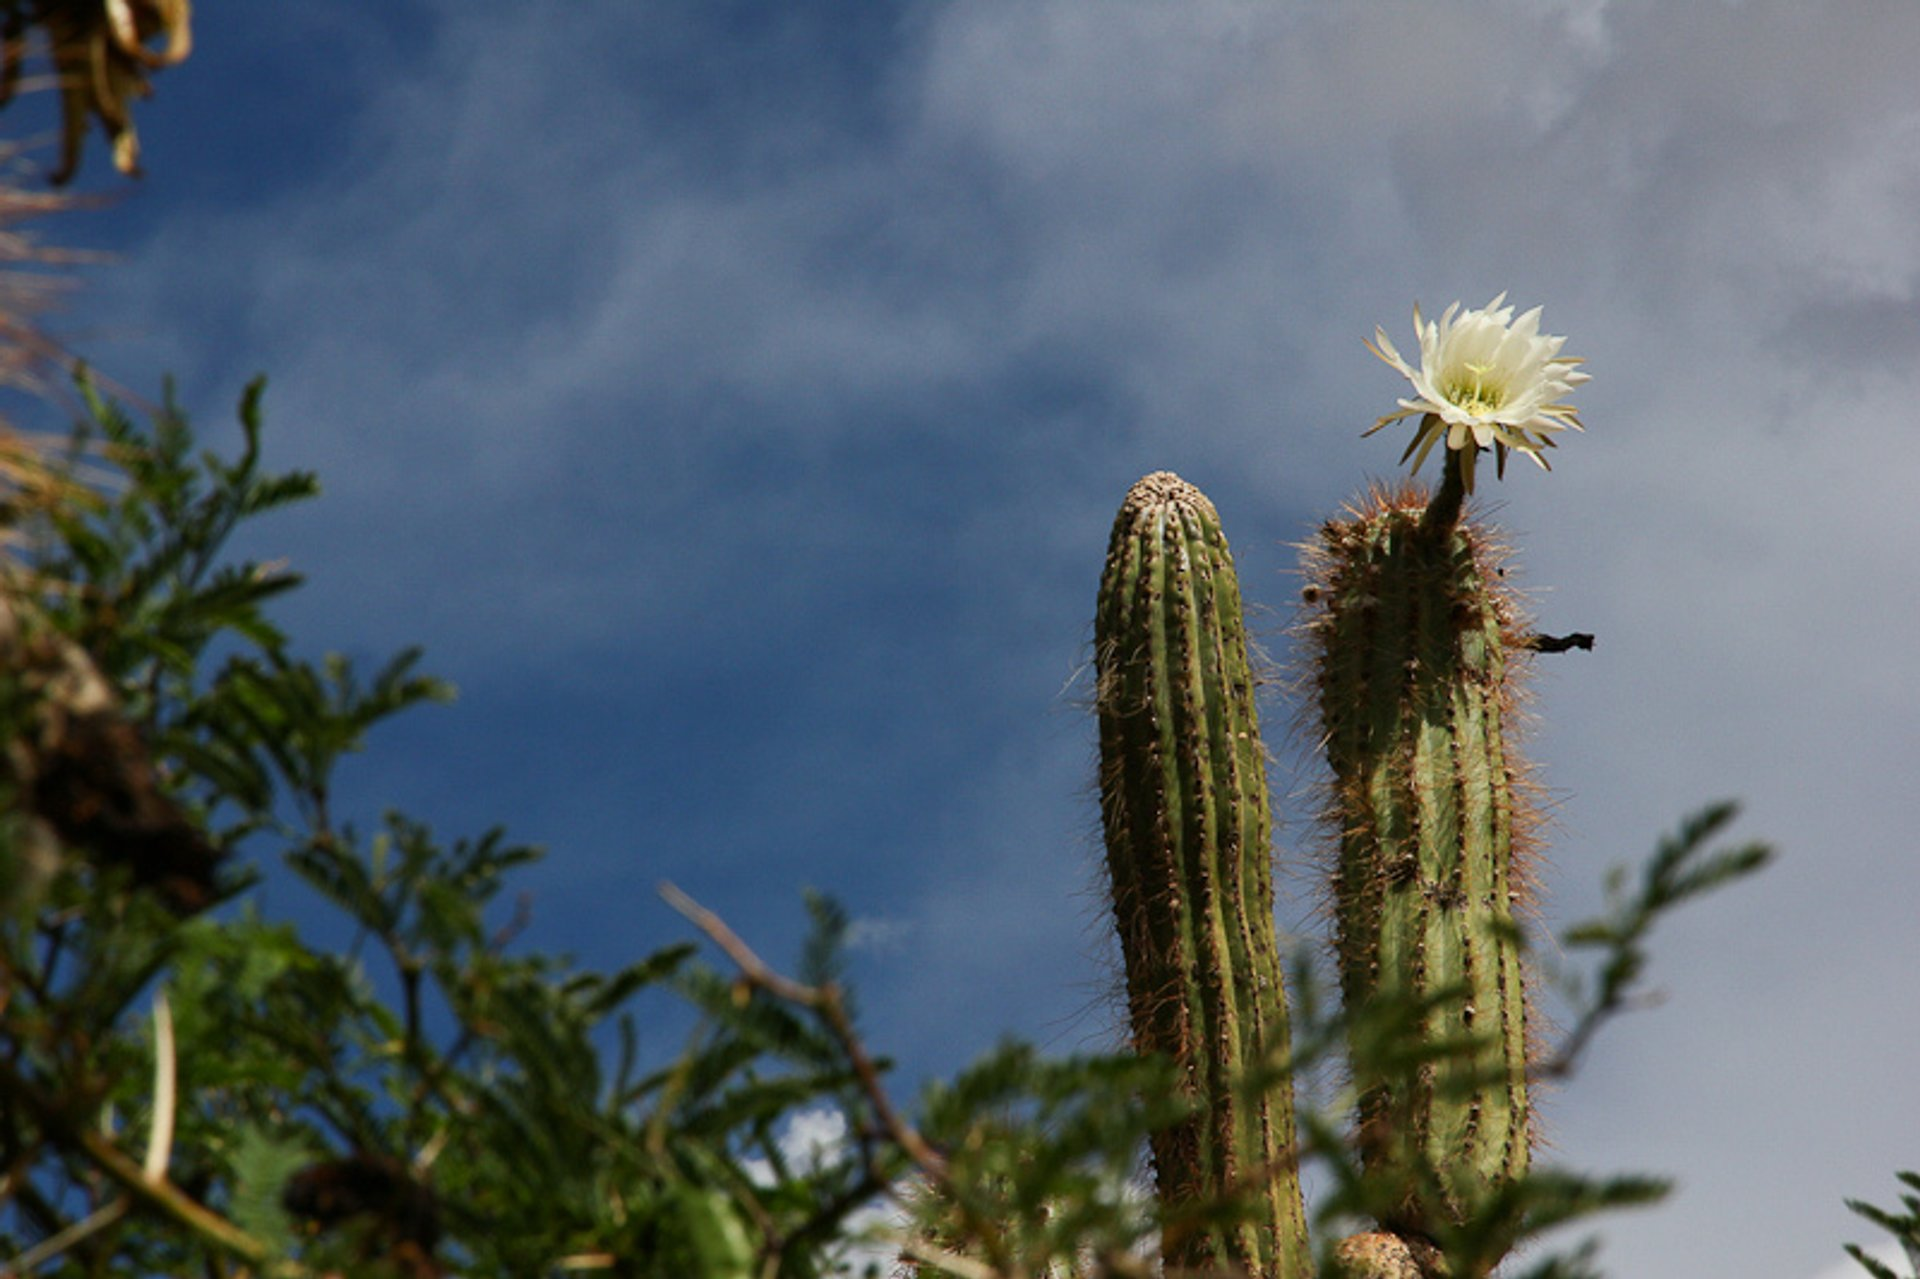 Blooming Cacti in Bolivia 2019 - Best Time